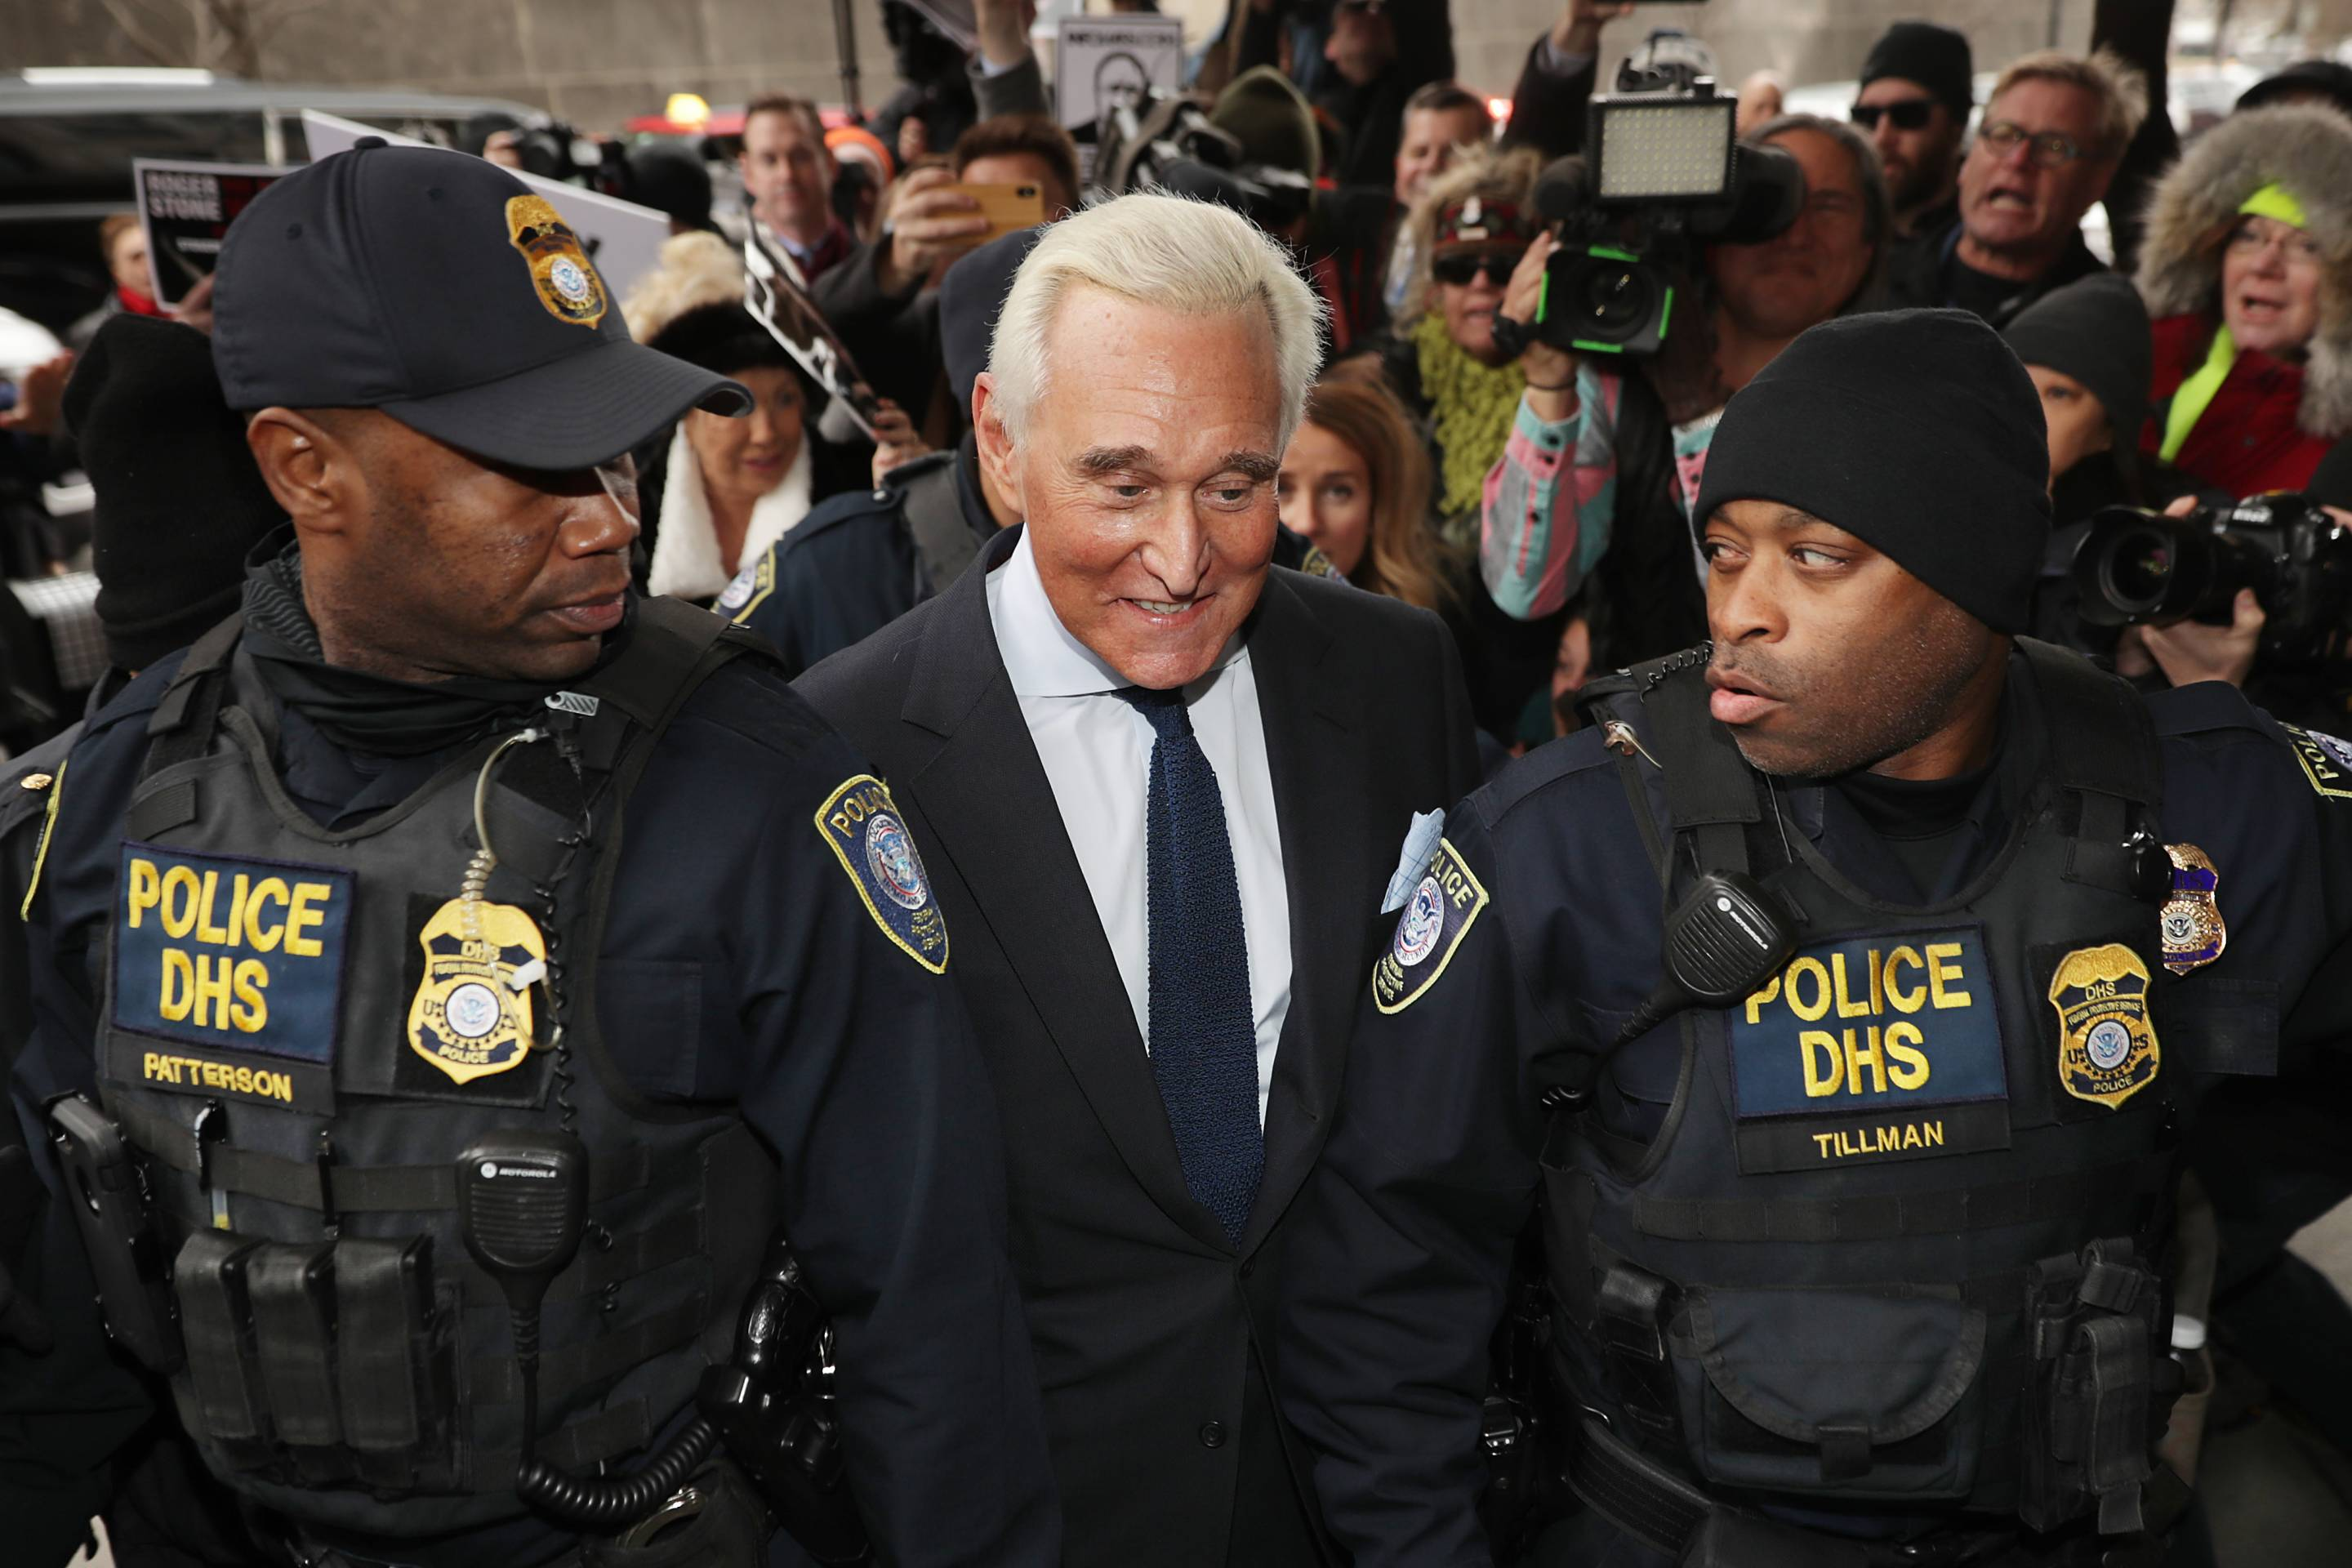 Roger Stone Arraigned On Charges Of Obstruction And Witness Tampering In Russia Investigation